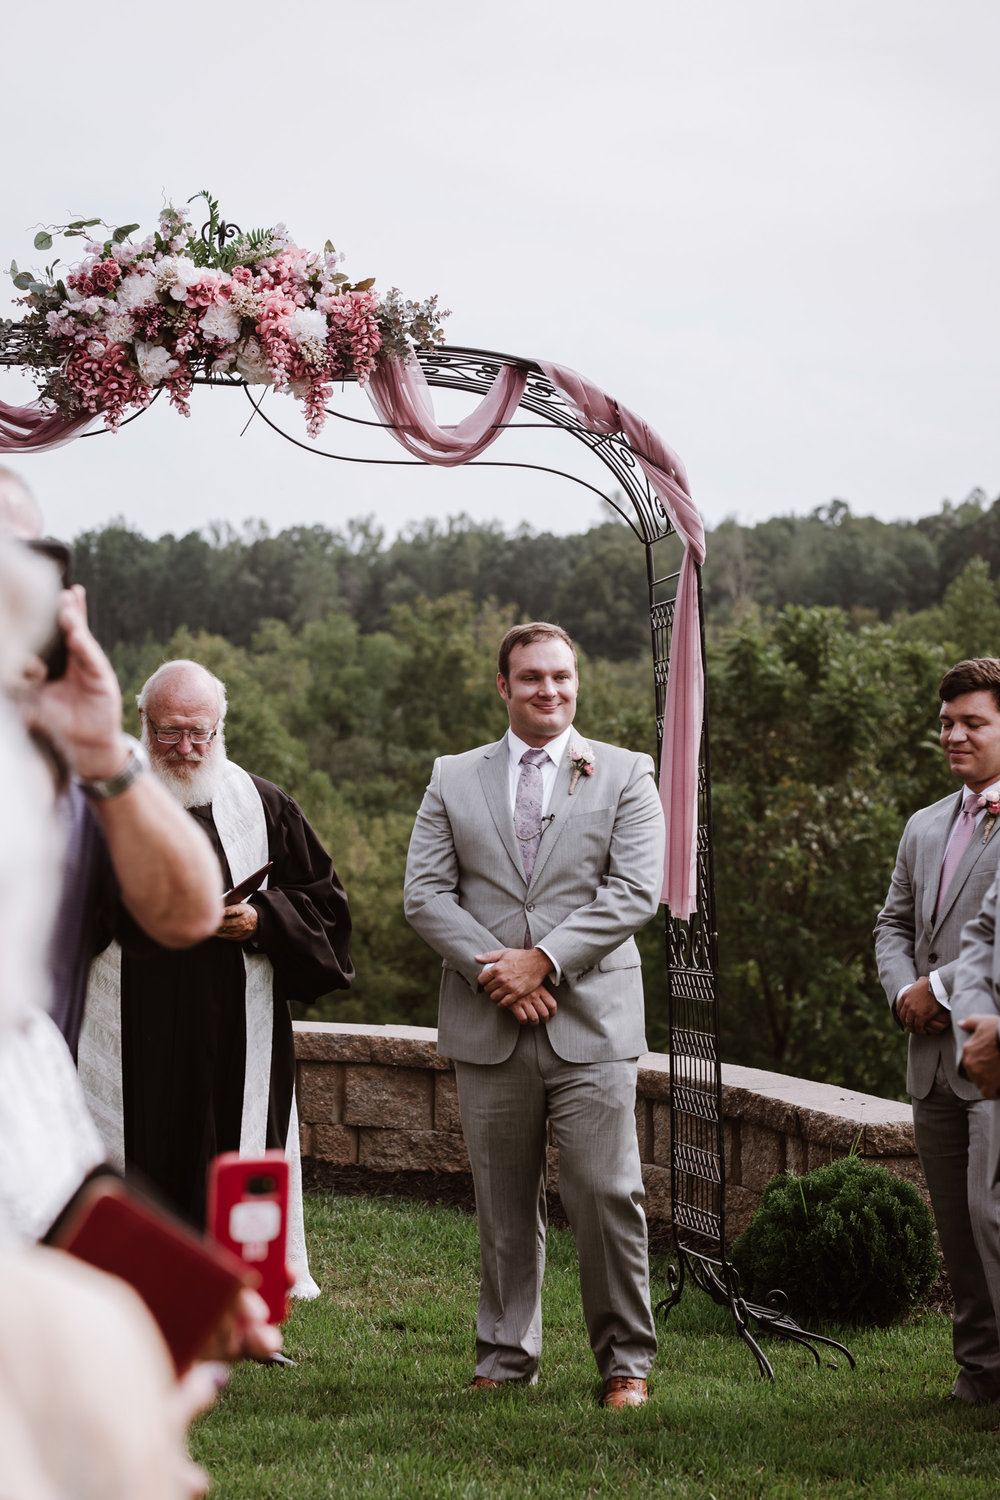 Wedding Ceremony by Kayli LaFon Photography | Greensboro Winston-Salem, NC Wedding Photographer | The Hideaway at Crooked Creek, Whitsett